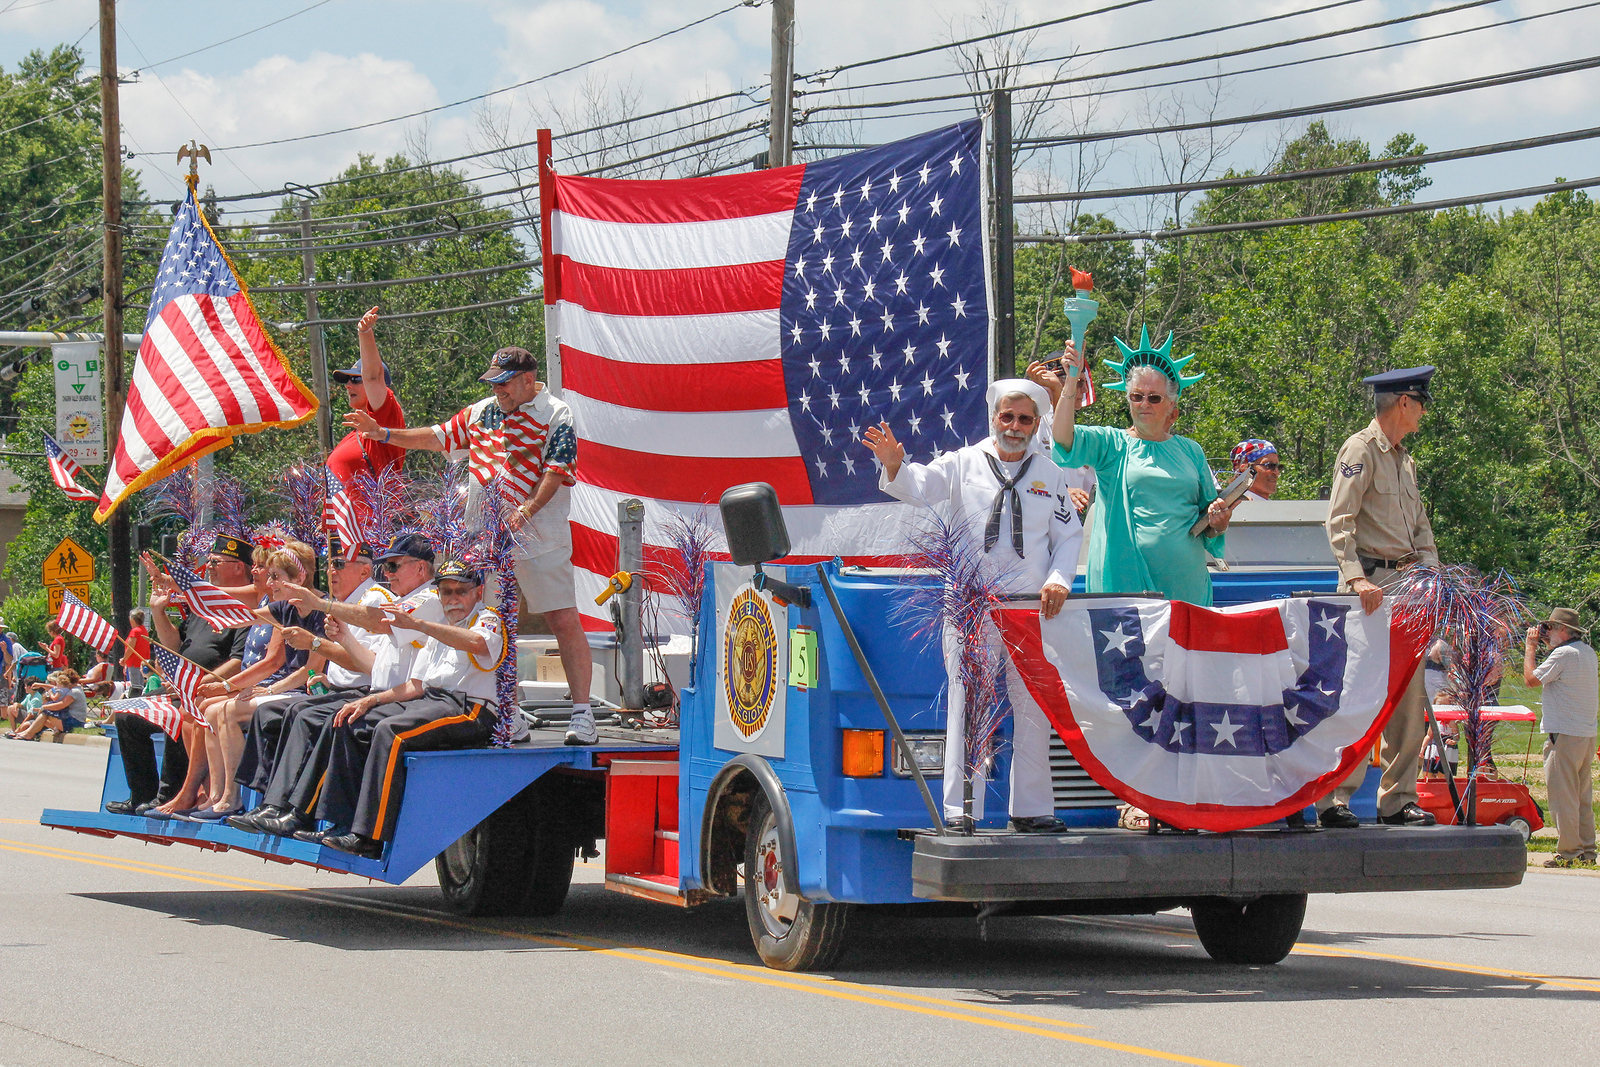 ALEC SMITH / GAZETTE A float is shown Sunday in the July 4 holiday weekend parade held on Center Road (state Route 303) in Brunswick as part of the city's Summer Celebration. Shown at left in the American flag T-shirt is Dave Hayes of Hinckley Township, an Air Force veteran. In the sailor uniform is Tom Bizzi from Brunswick, a veteran of the Navy. Shown as Miss Liberty is Barb Hayes of Hinckley, the wife of Dave Hayes. Shown on the corner on the right is Ralph Johnson of Hinckley Township, an Air Force veteran. Driving the float in the back in the red hat is Bob Prevost, an American Legion Post 234 Commander from Brunswick.